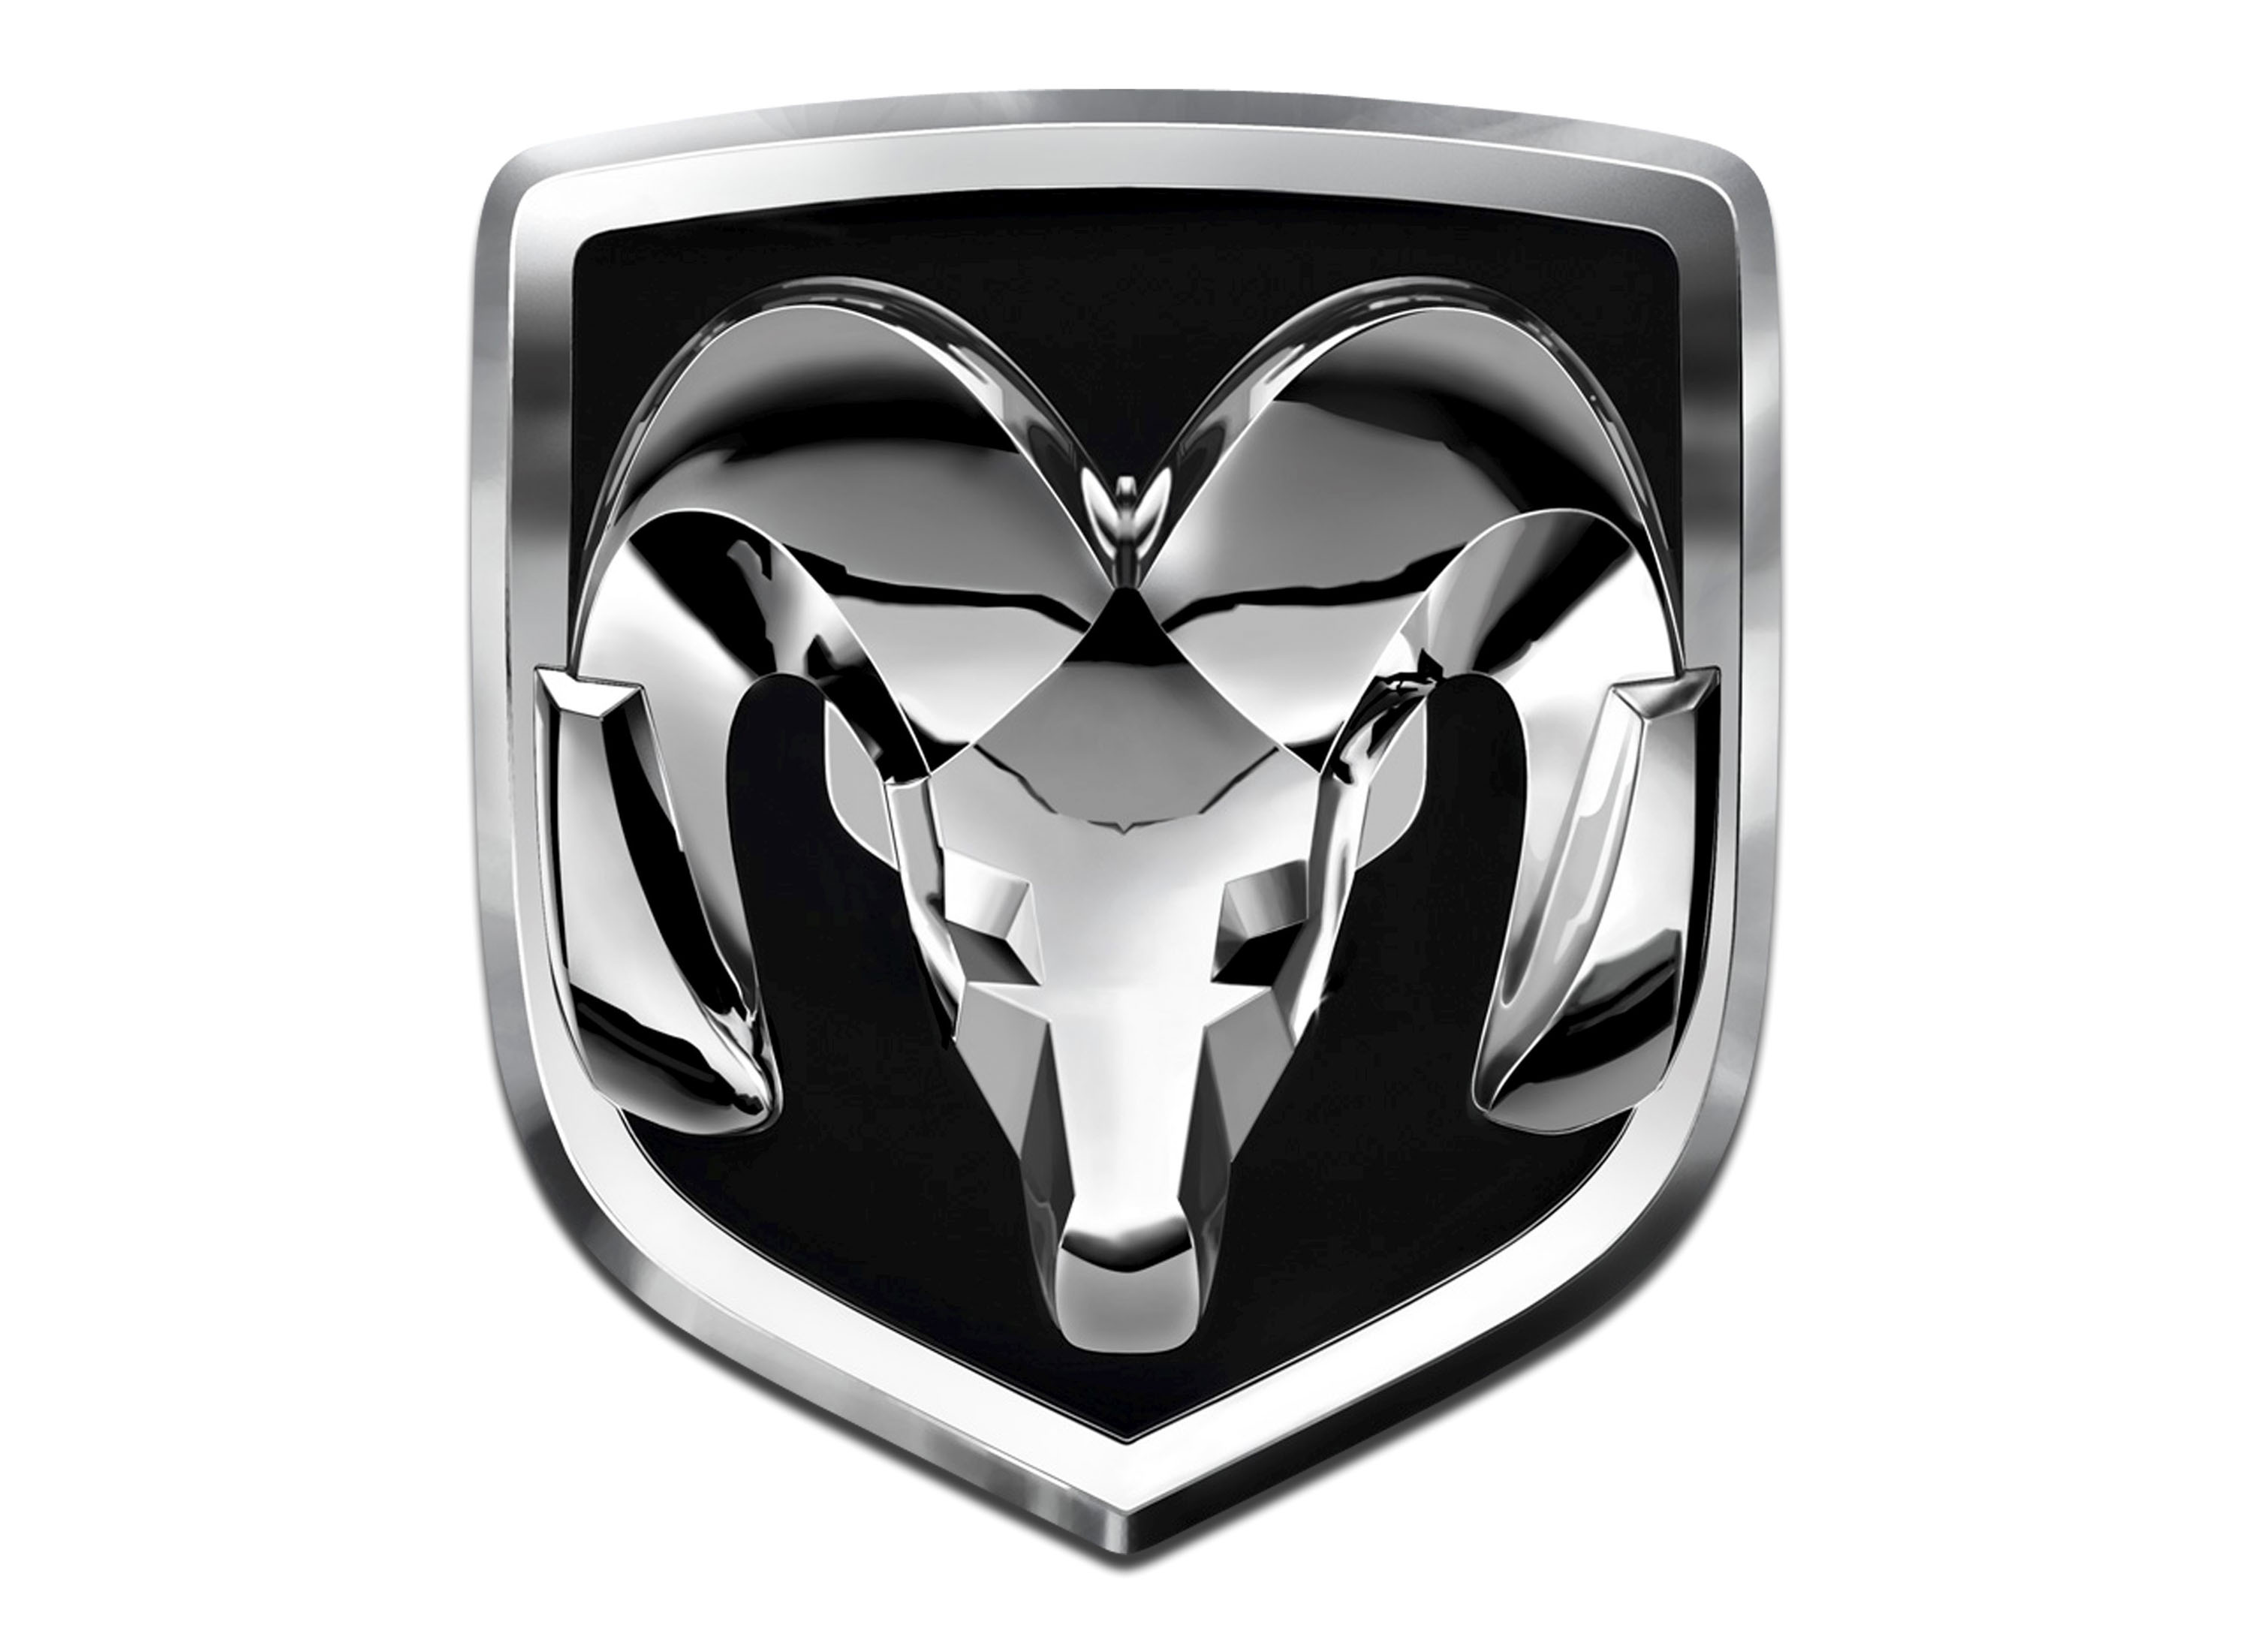 Ram\'s New Emblem Gets Tougher For 2019.